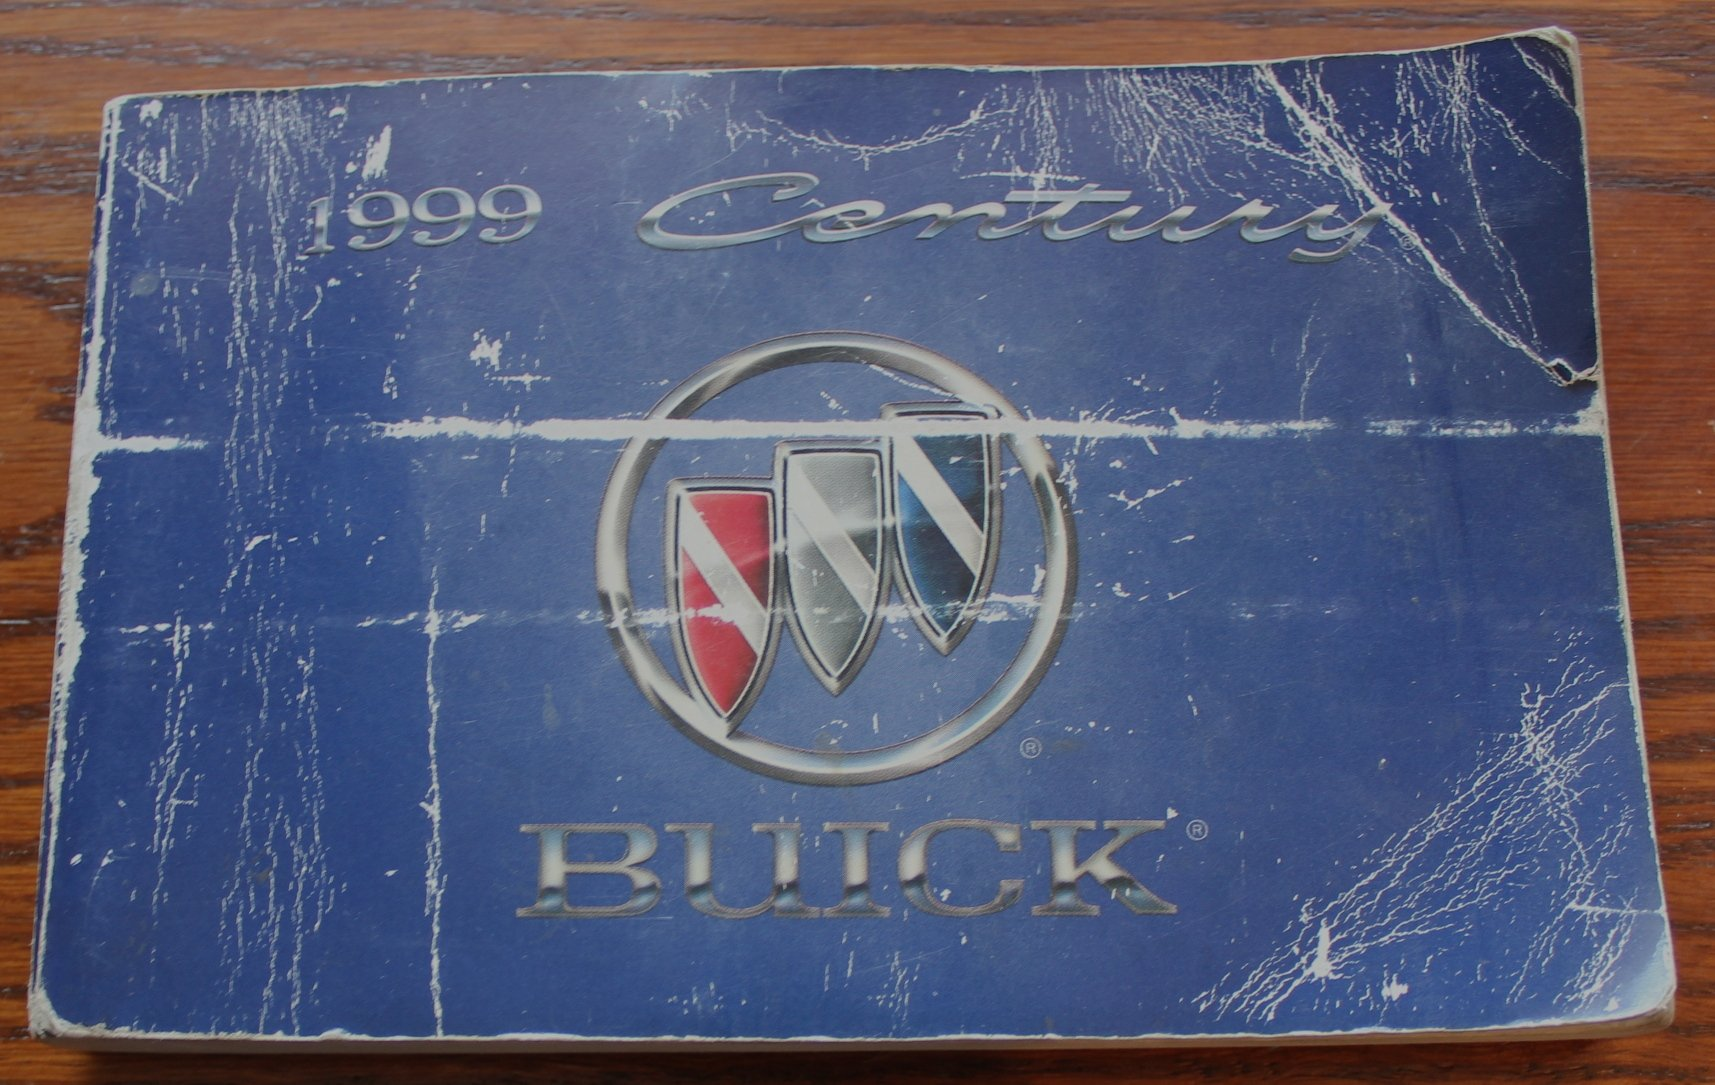 1999 Buick Century Owners Manual